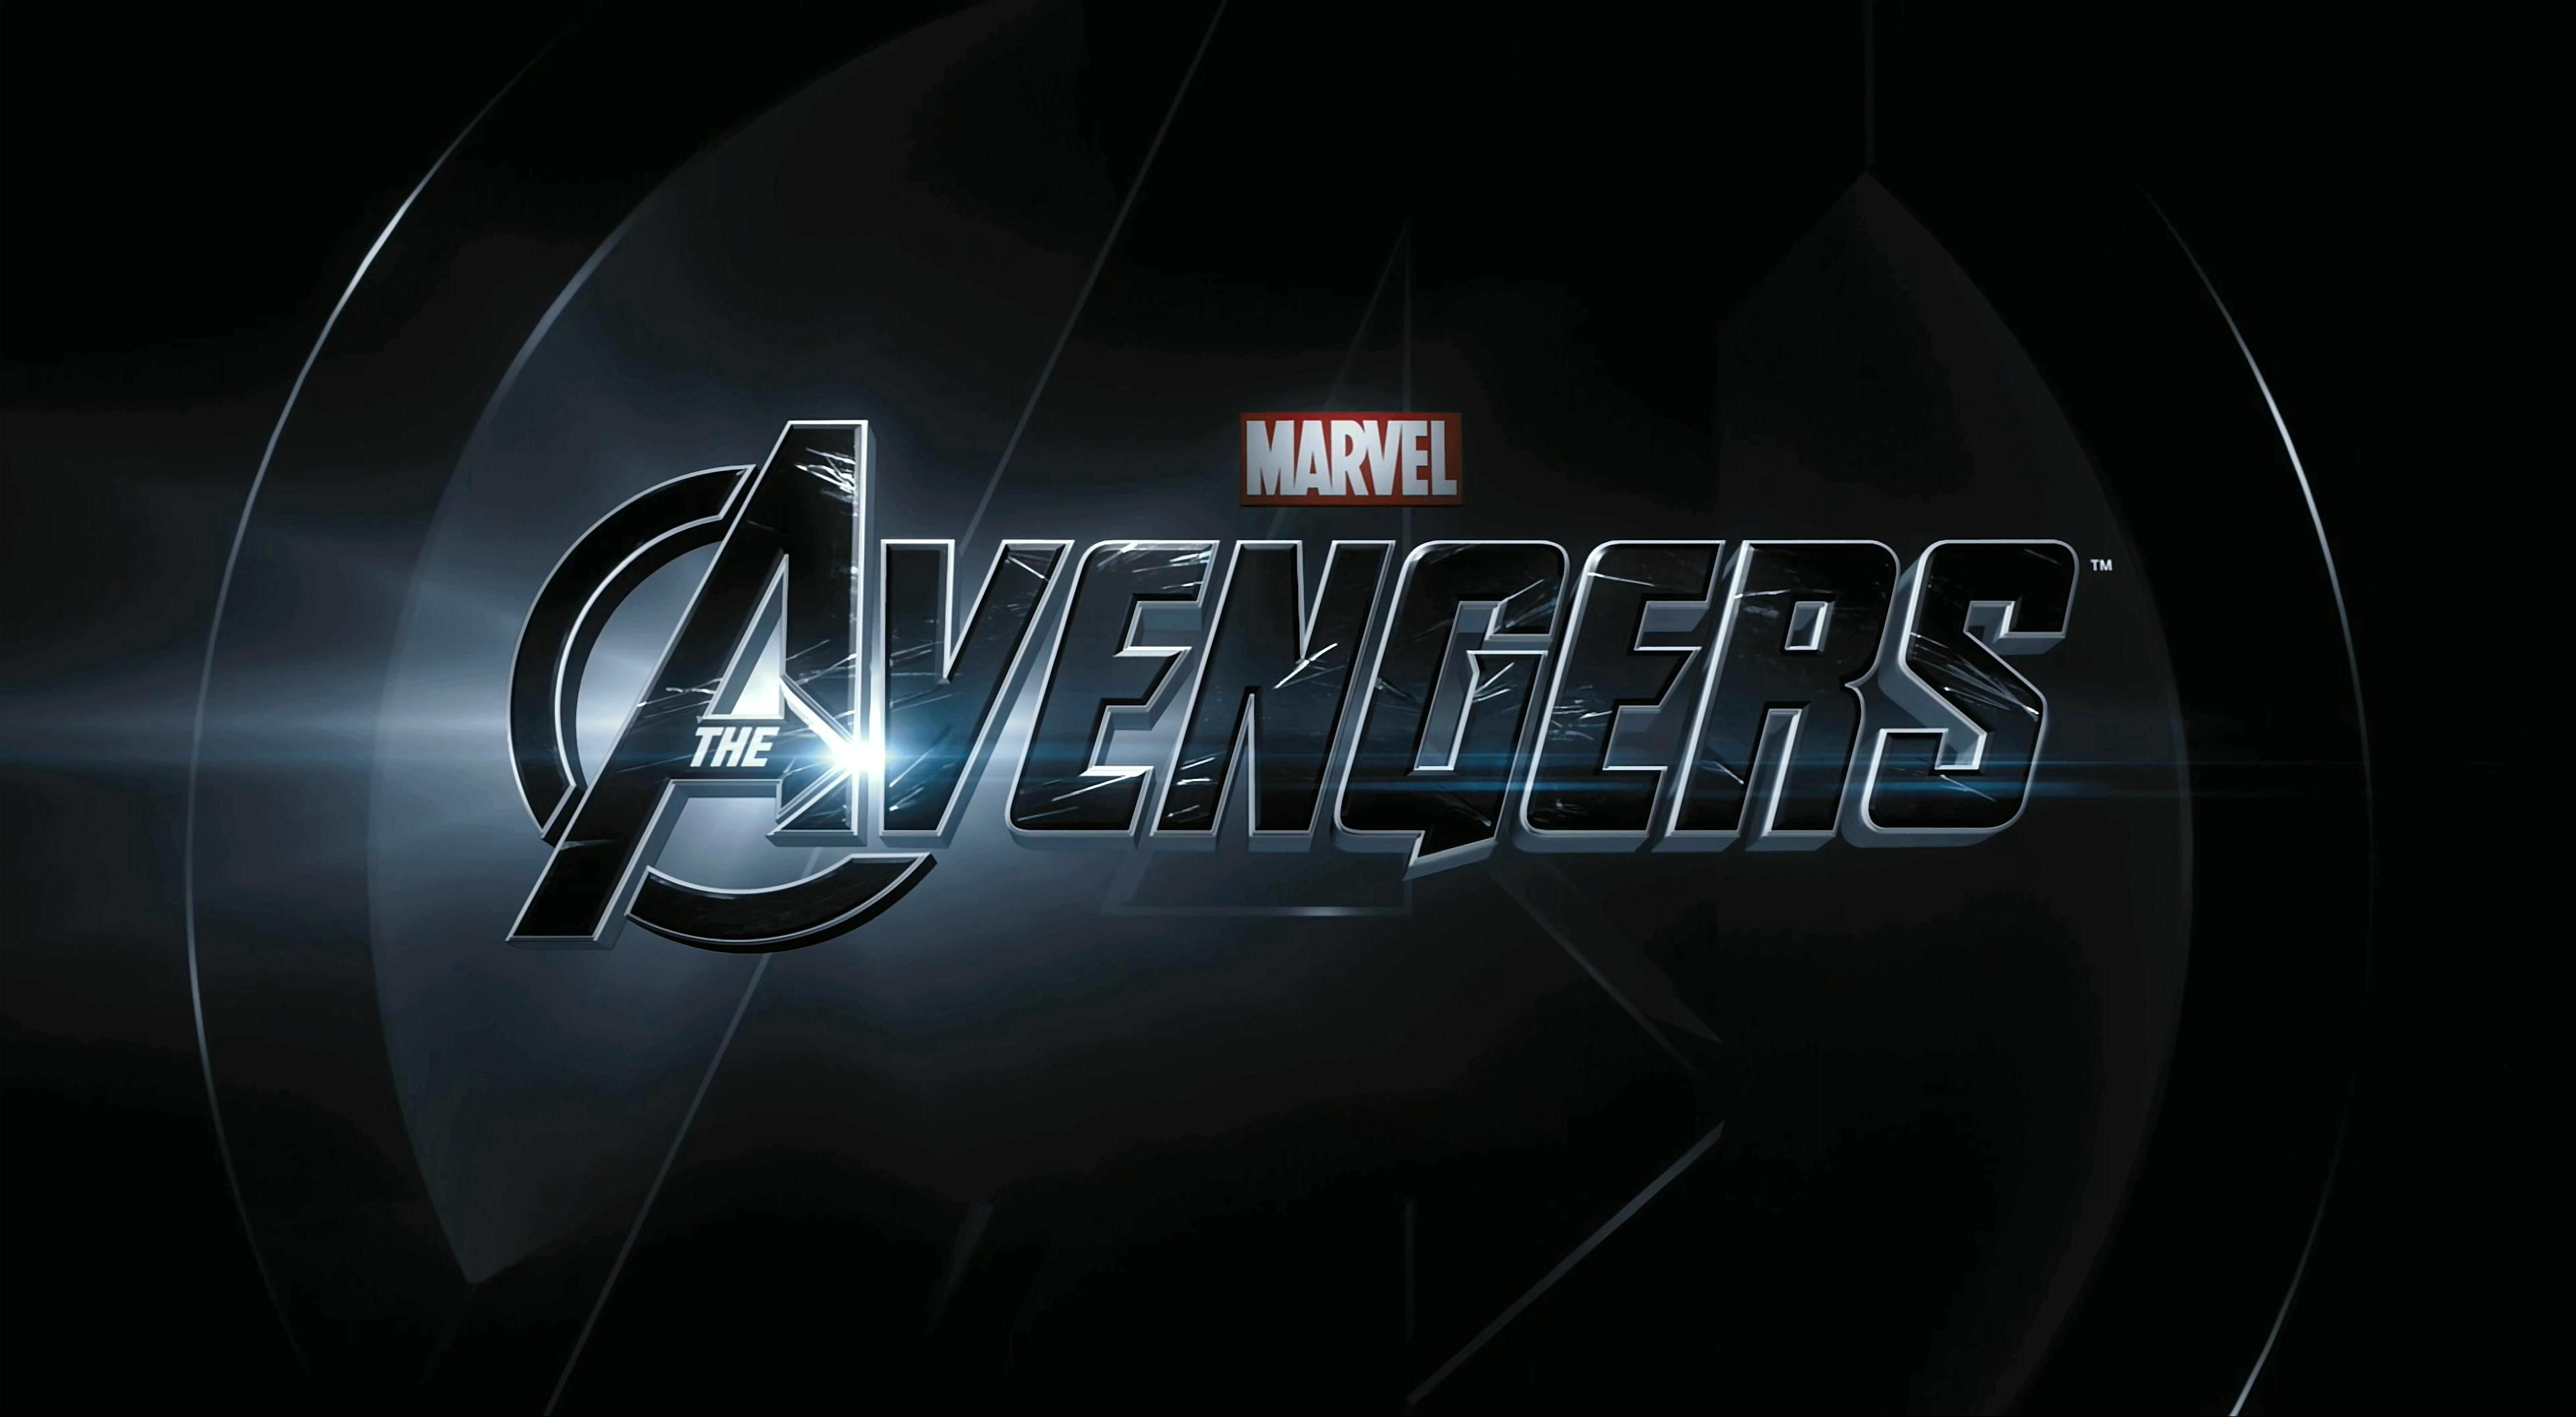 The Avengers movie logo. Movie Wallpapers. HD Wallpaper